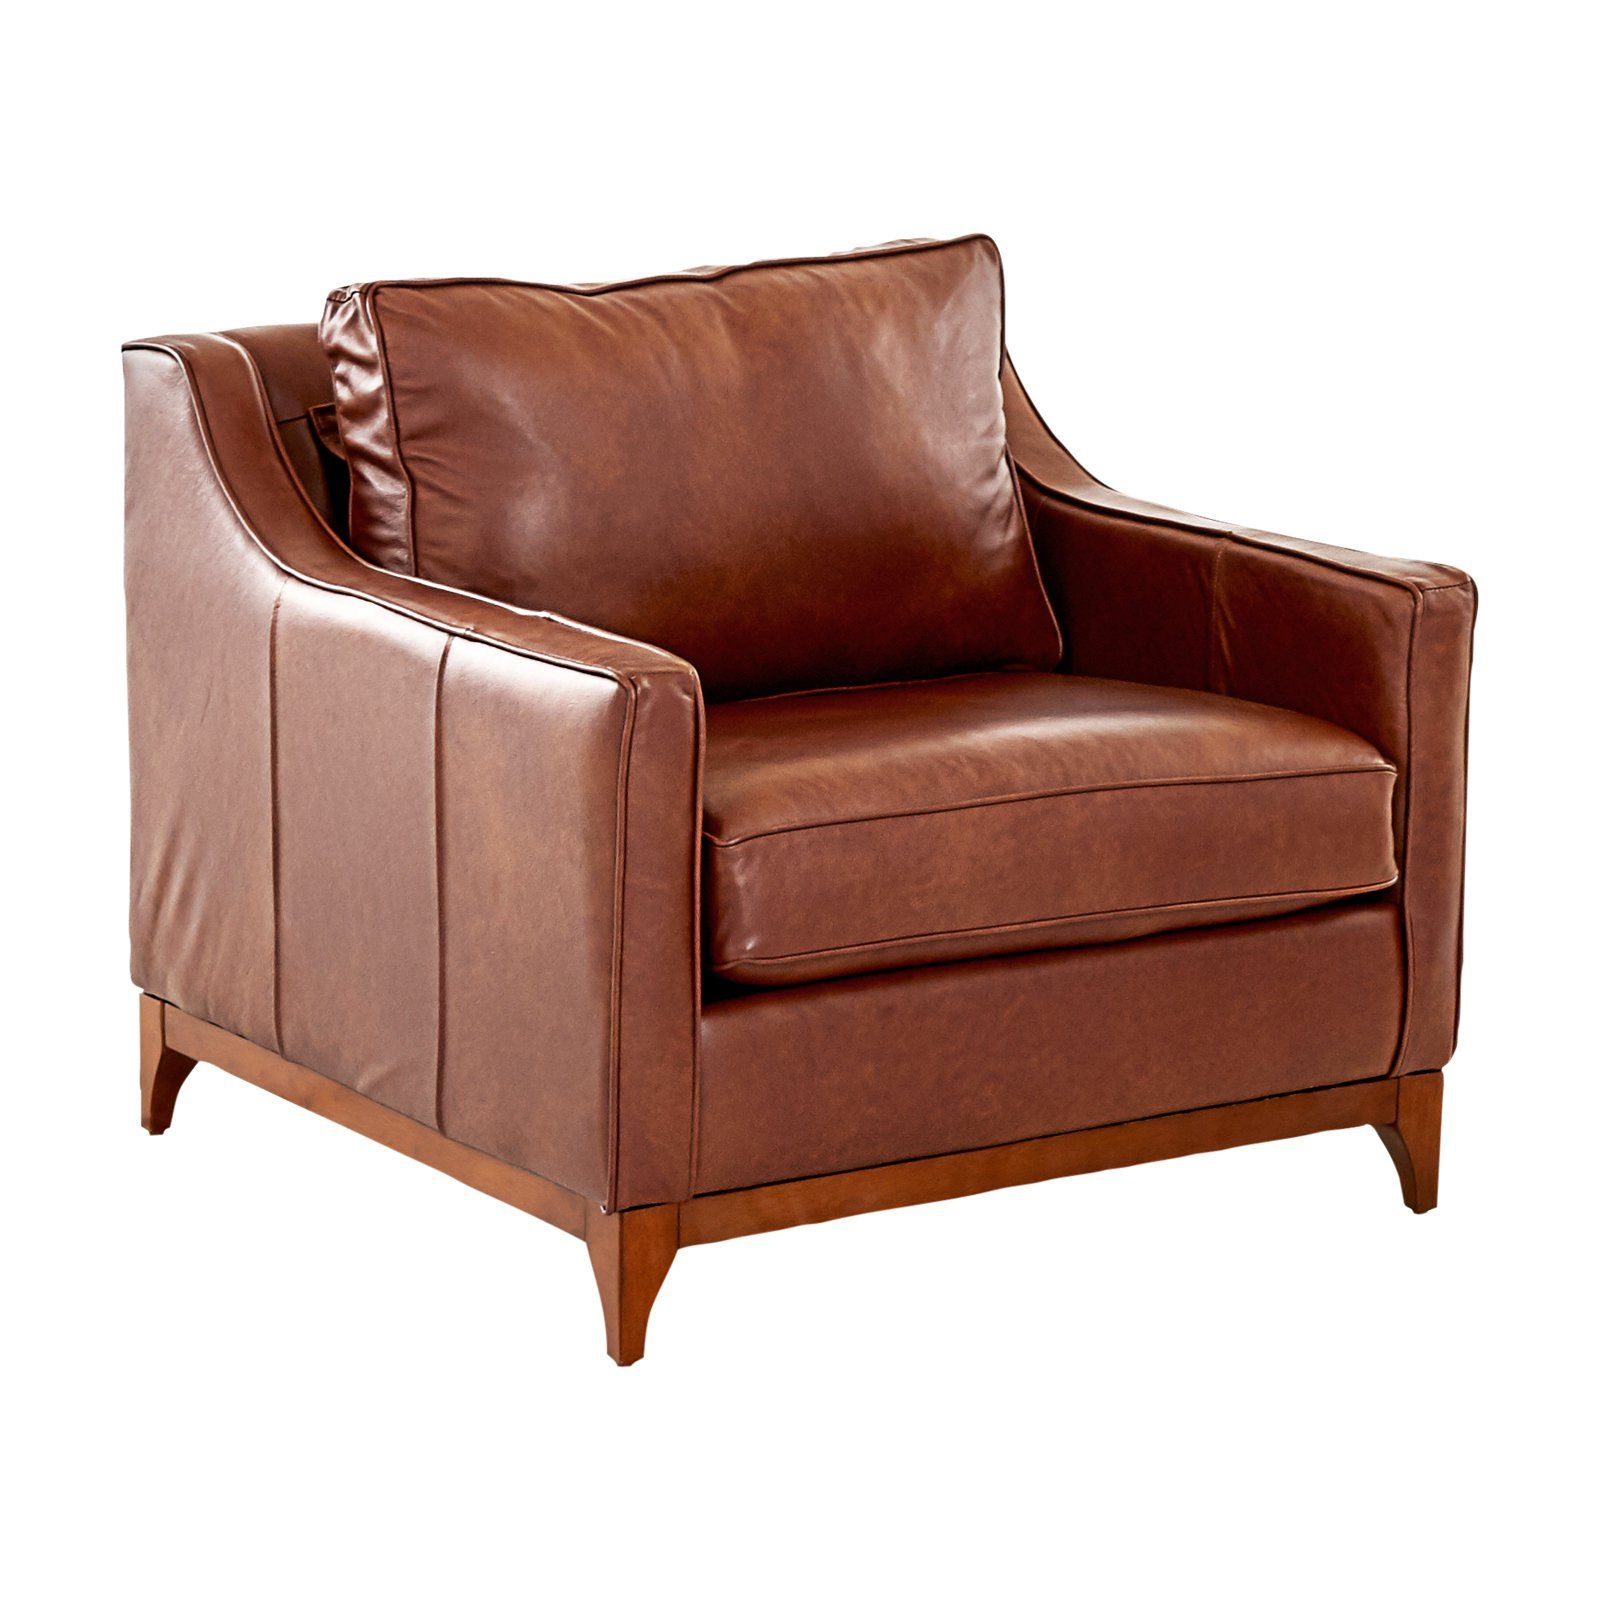 Avenue 405 Ansley Leather Arm Chair Driftwood In 2020 Armchair